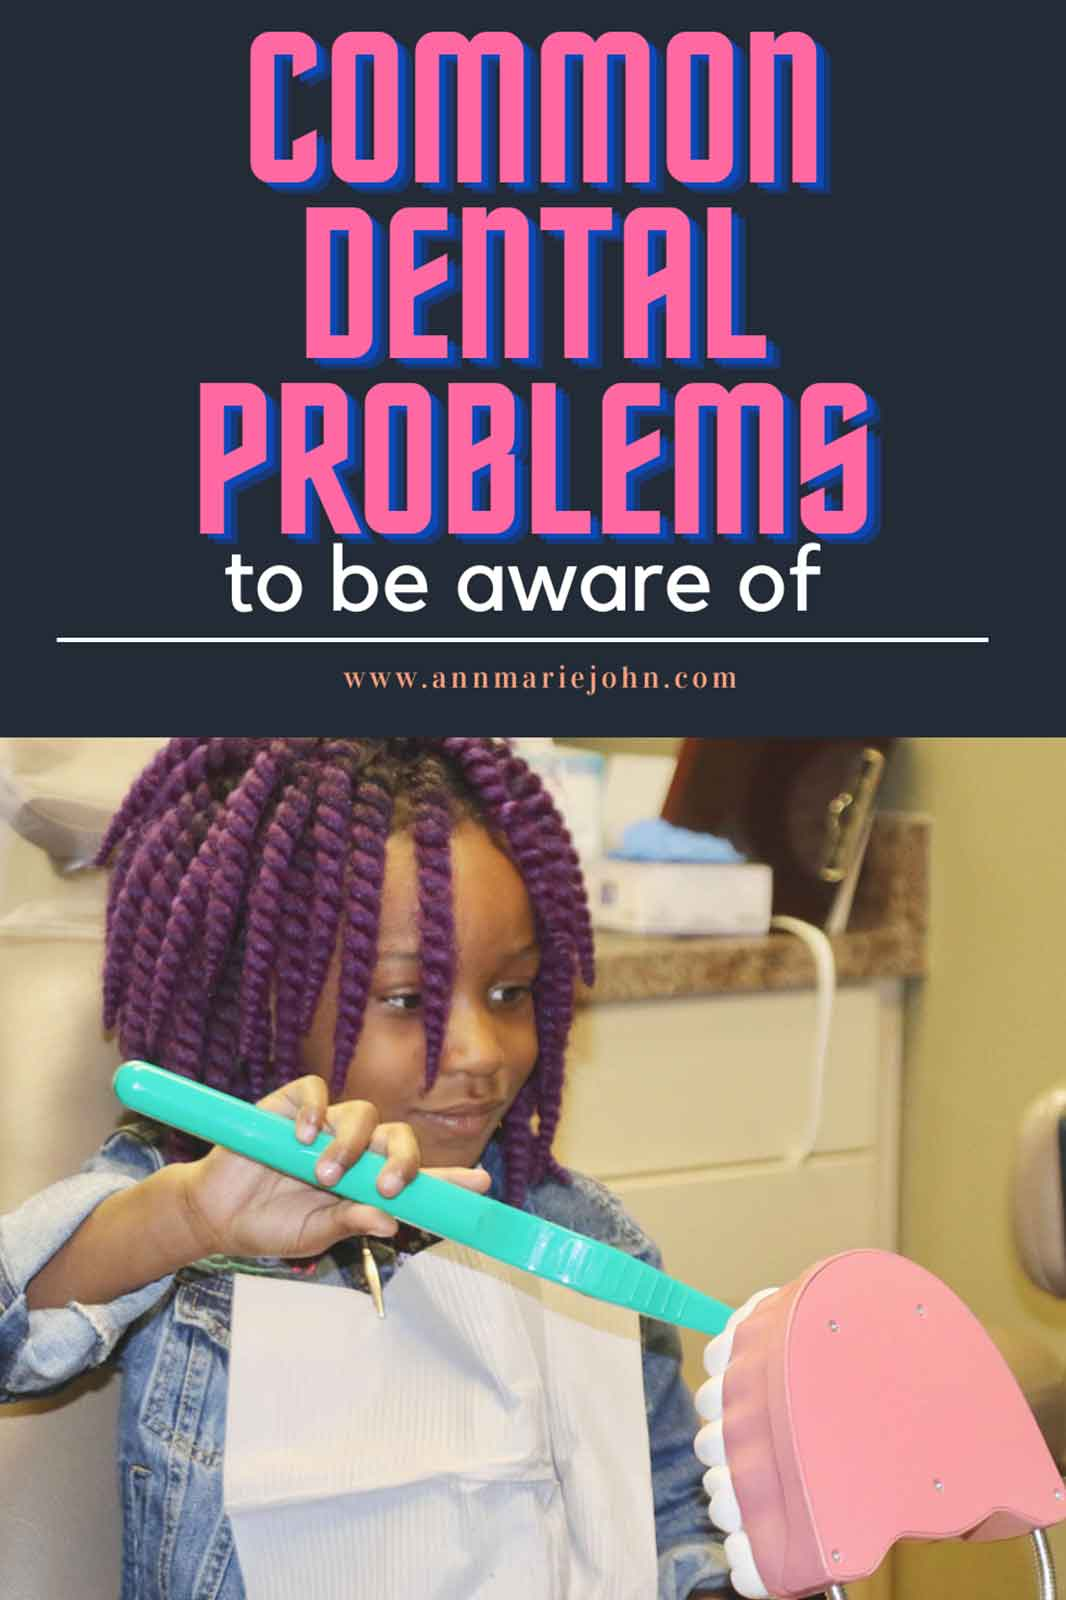 Common Dental Problems to be Aware of